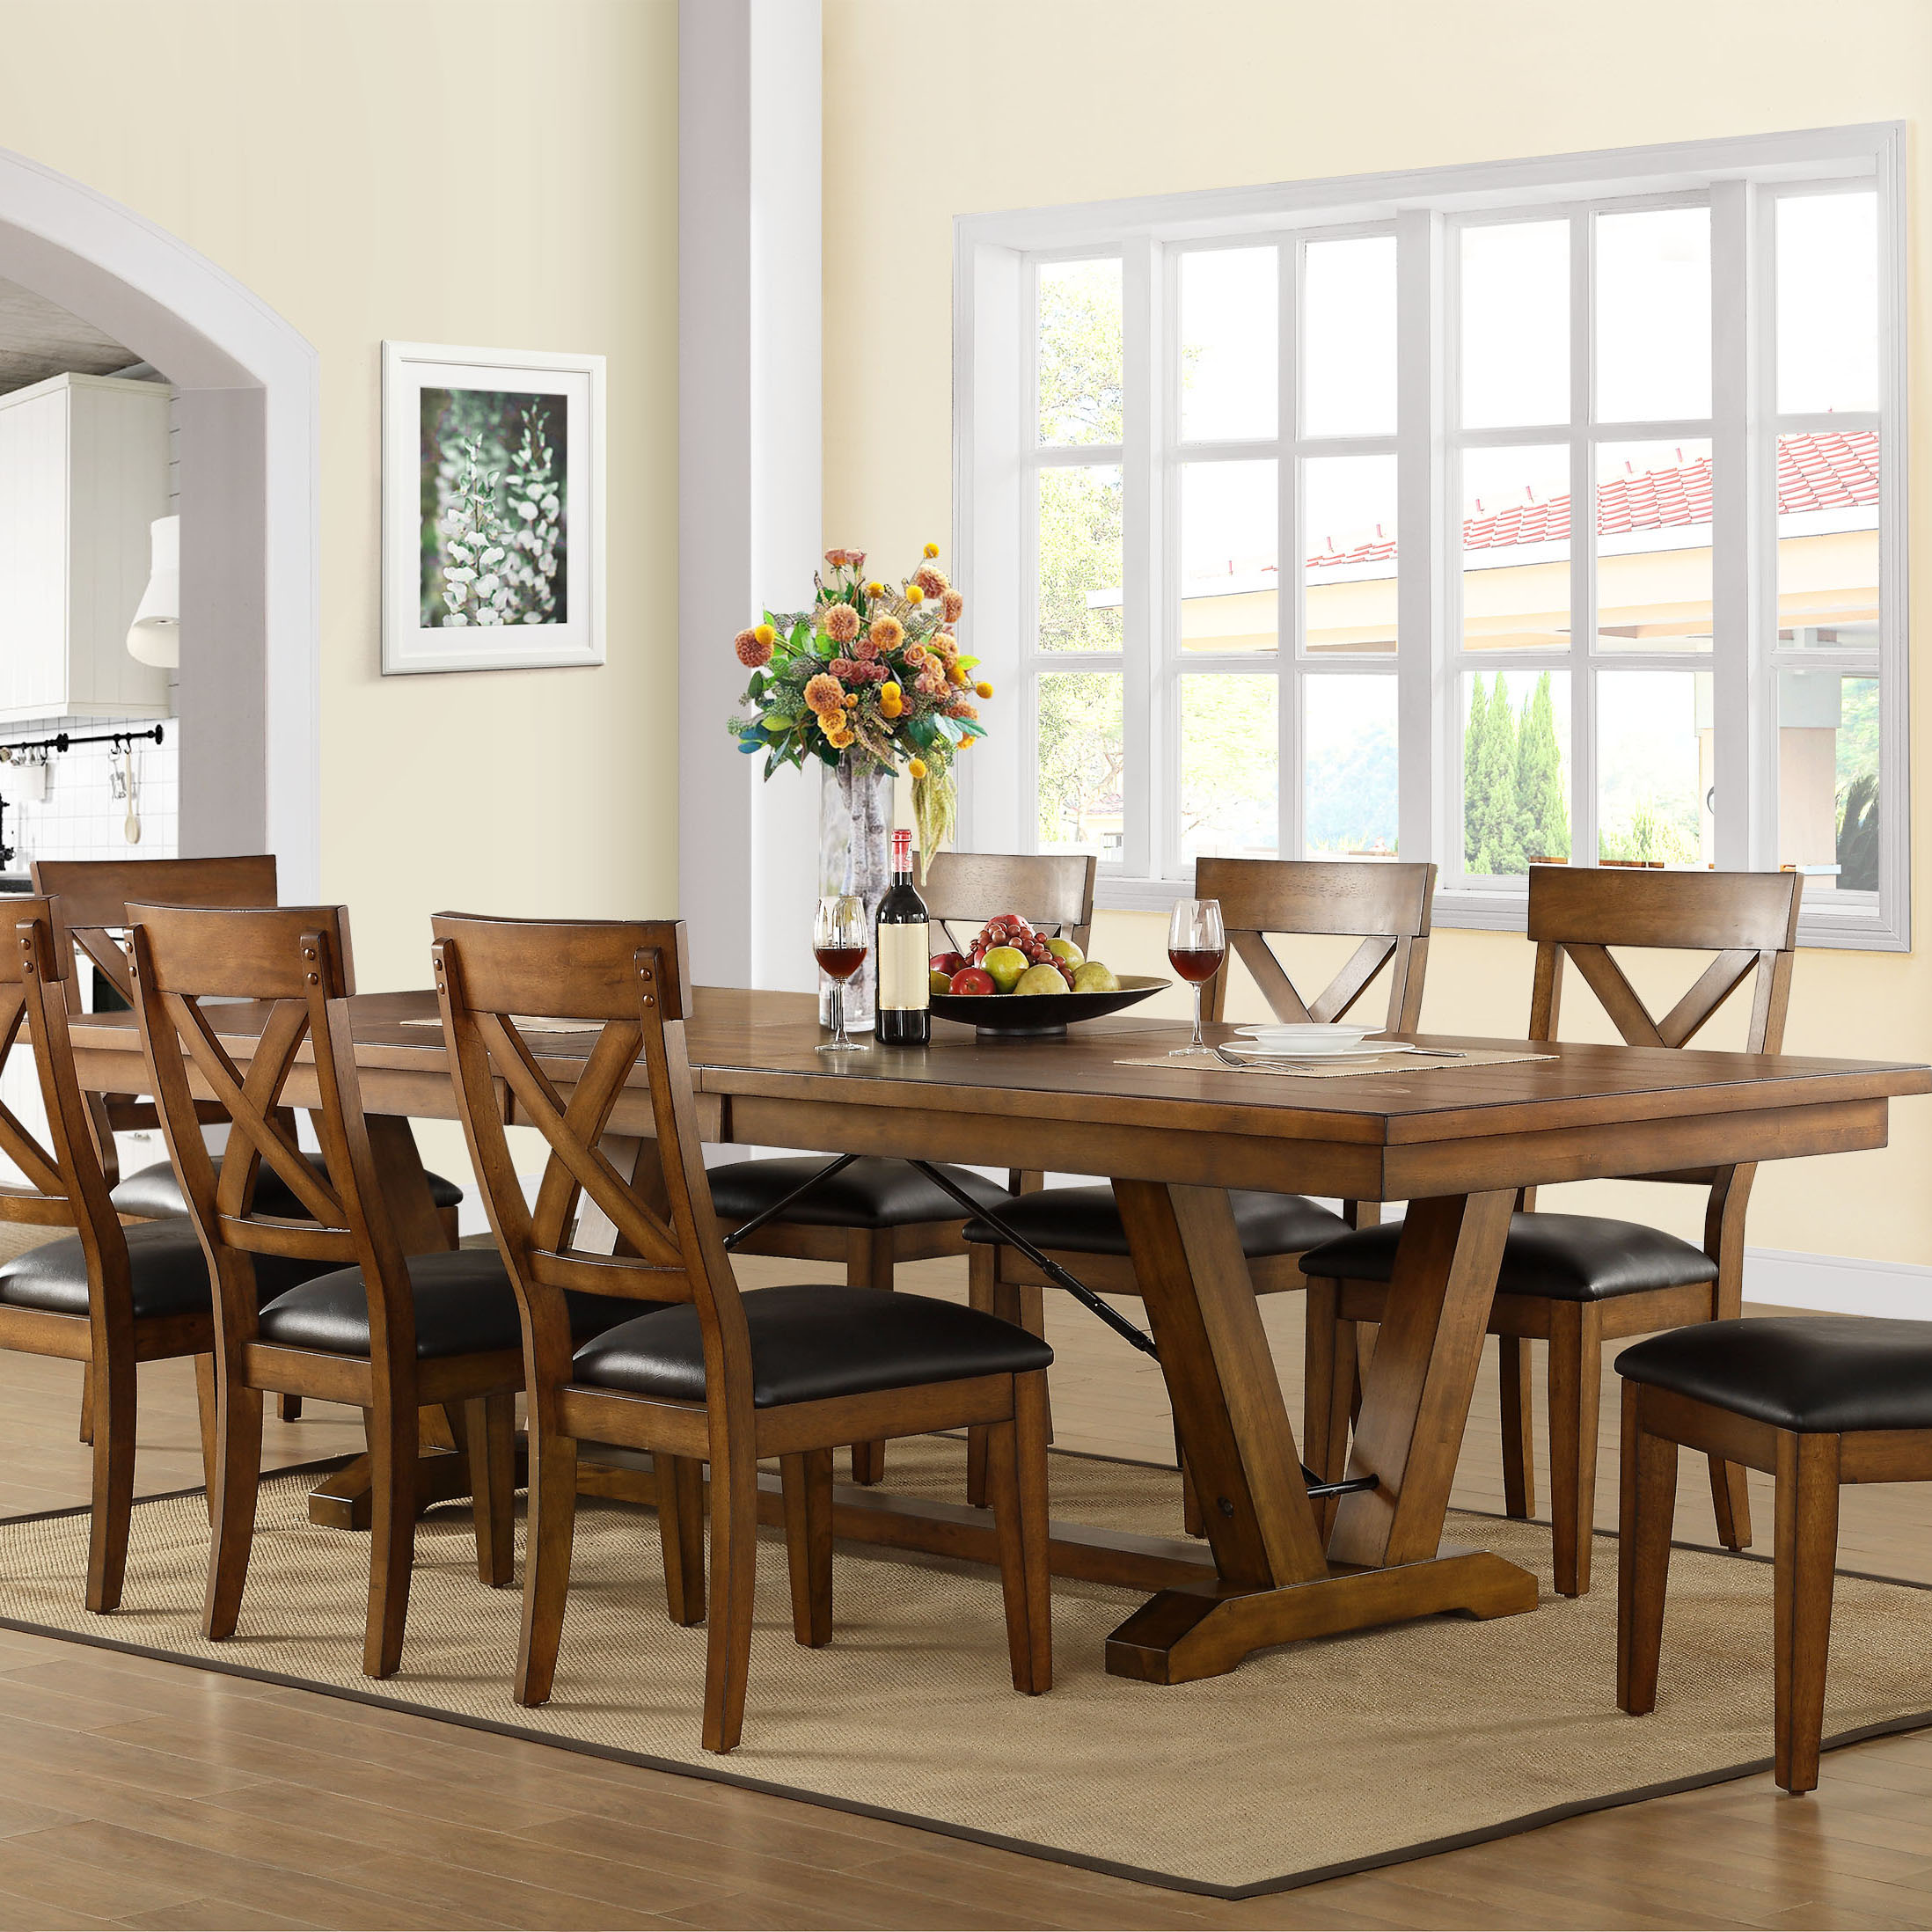 9 Piece Dining Set